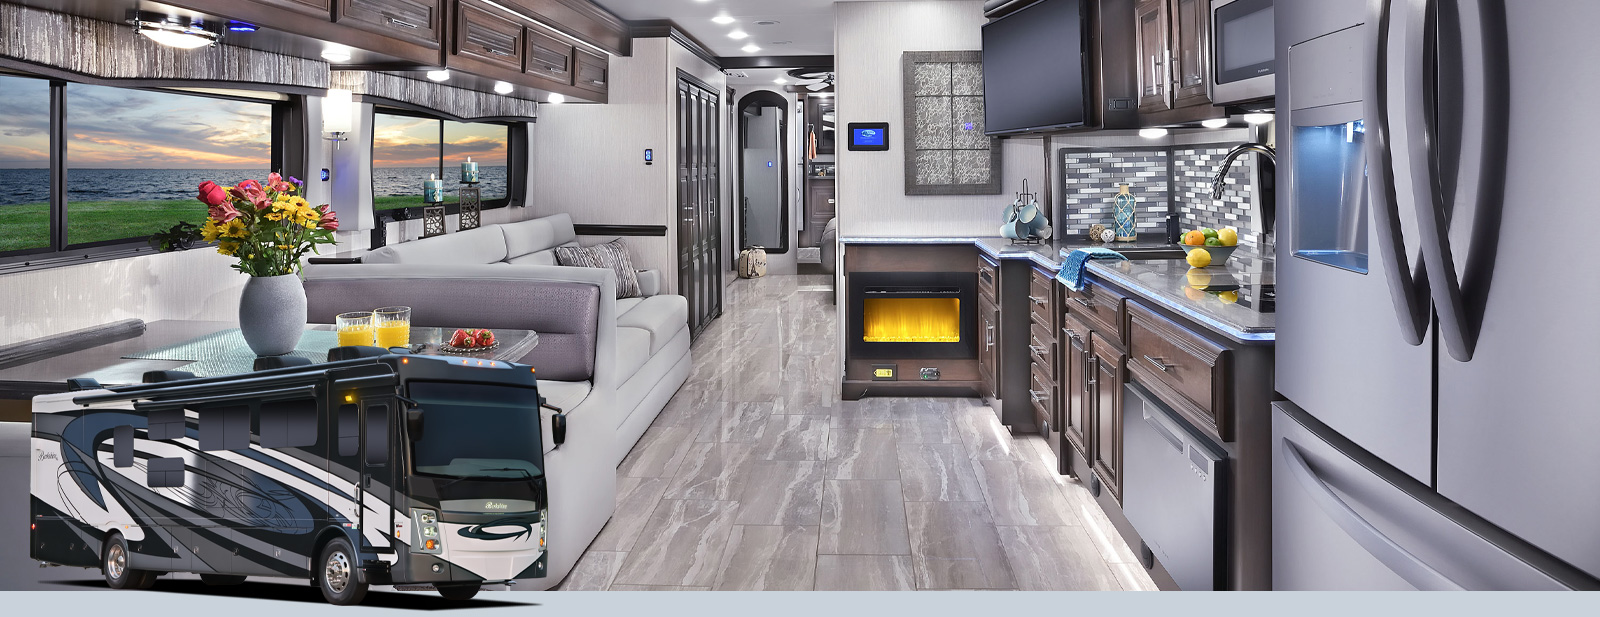 a1248f9cab4 Berkshire XL Class A Motorhomes by Forest River RV